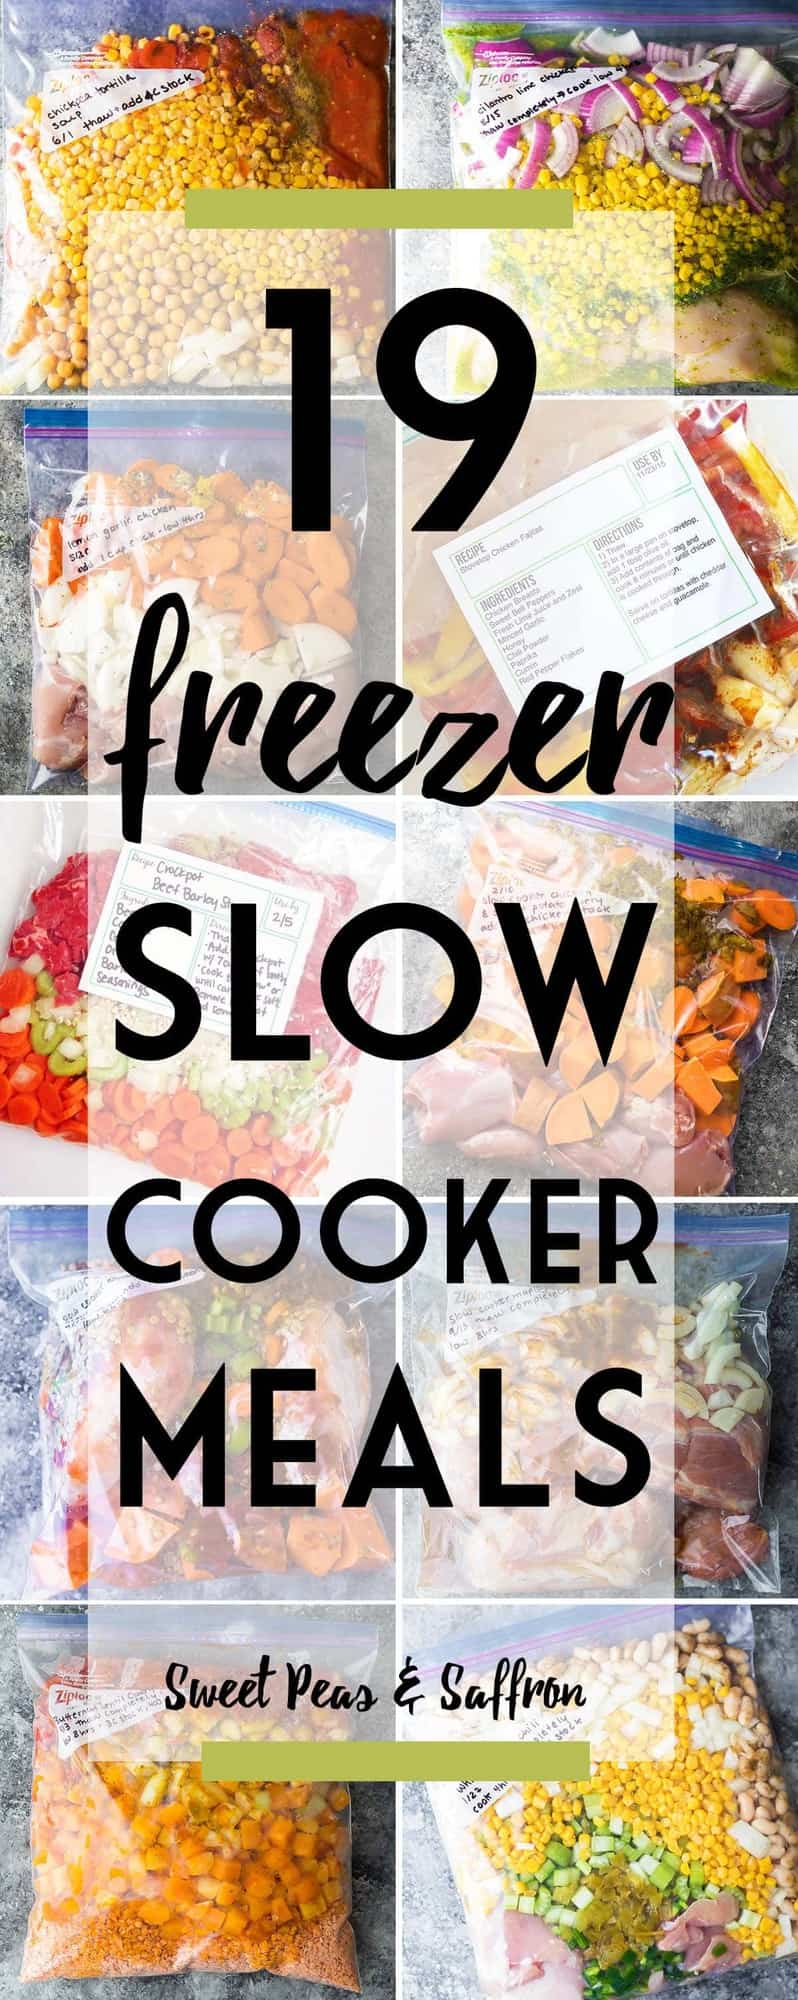 Crockpot Freezer Meals make for the most effortless weeknight dinners...just dump them into the slow cooker and set the timer! Here are some delicious and healthy freezer crockpot meals to stock up on!